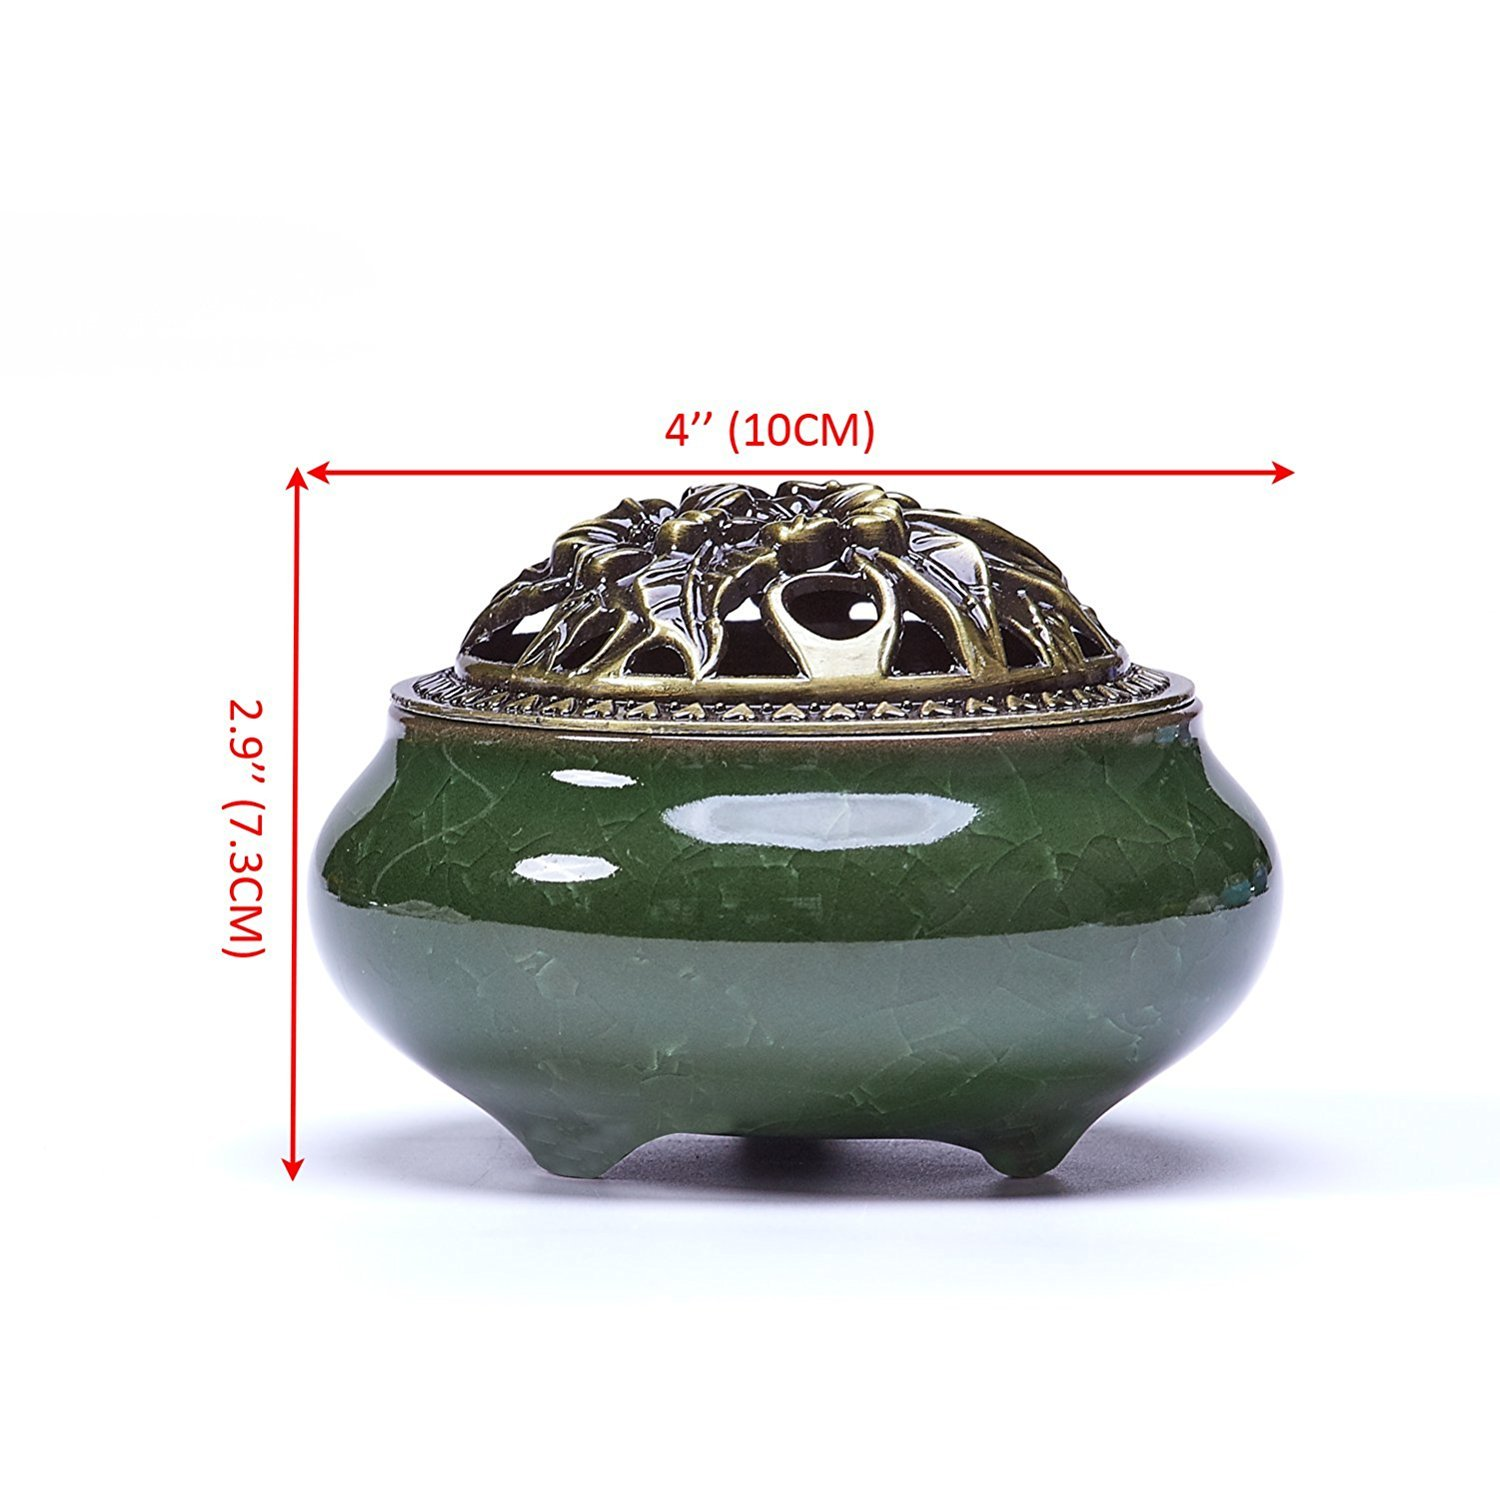 Ceramic Incense Burner & Porcelain Incense Holder for Cone, Coil and Stick Incense,Ice-Patterned Handmade Censer with Brass Calabash by Corcio (Green)